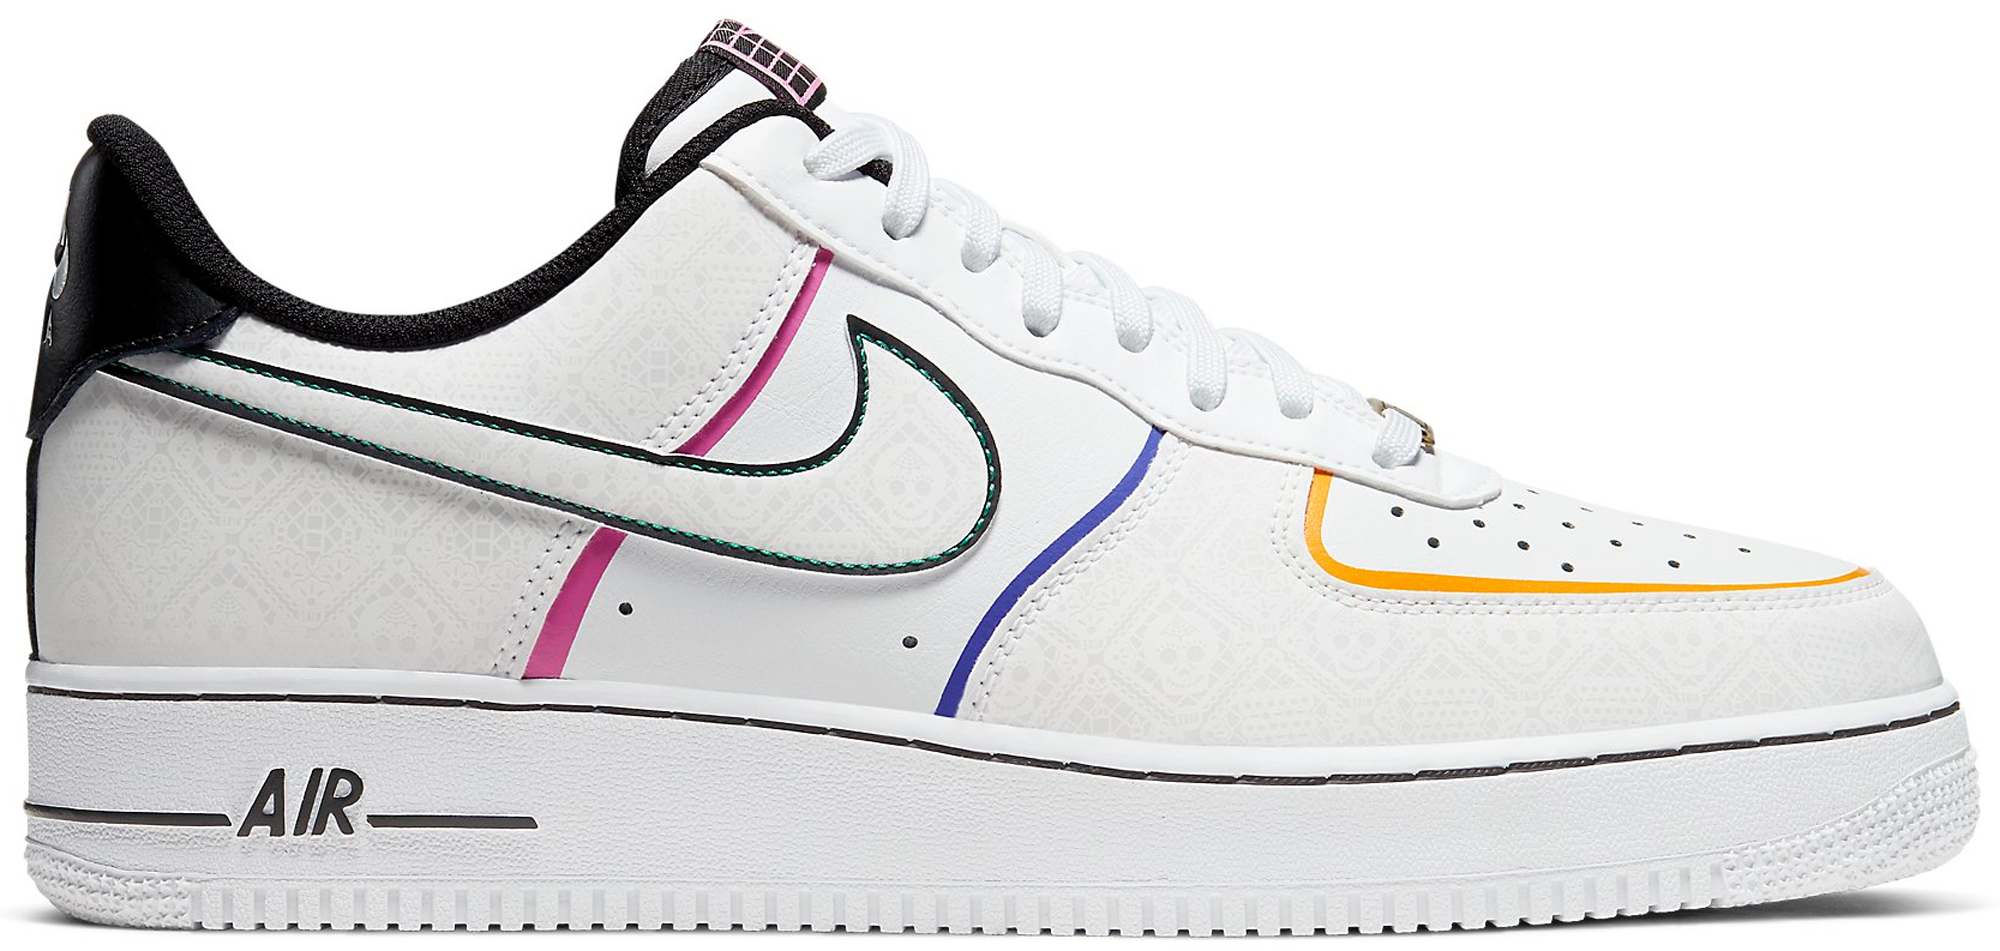 Pre-owned Nike Air Force 1 Low Day Of